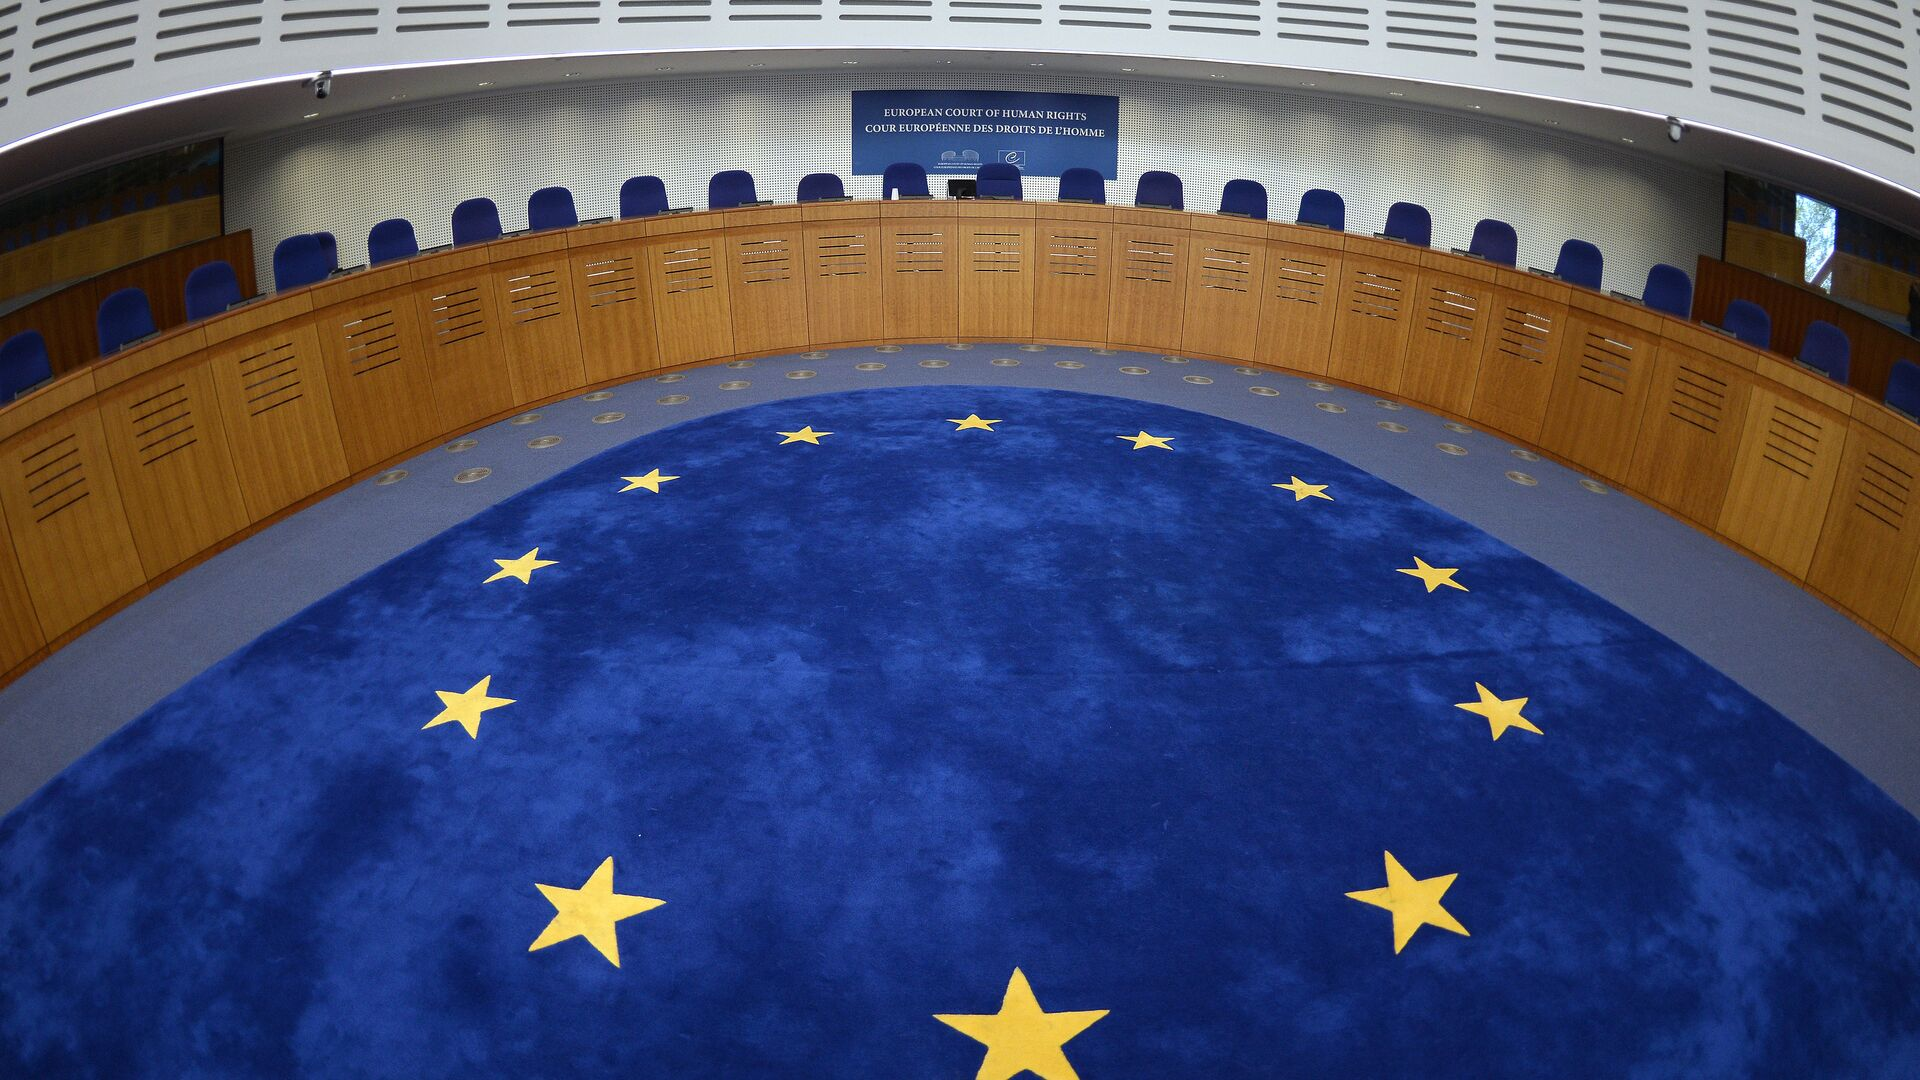 Picture taken on April 23, 2015 shows the audience room of the European Court for Human Rights, in Strasbourg, eastern France - Sputnik Italia, 1920, 25.08.2021